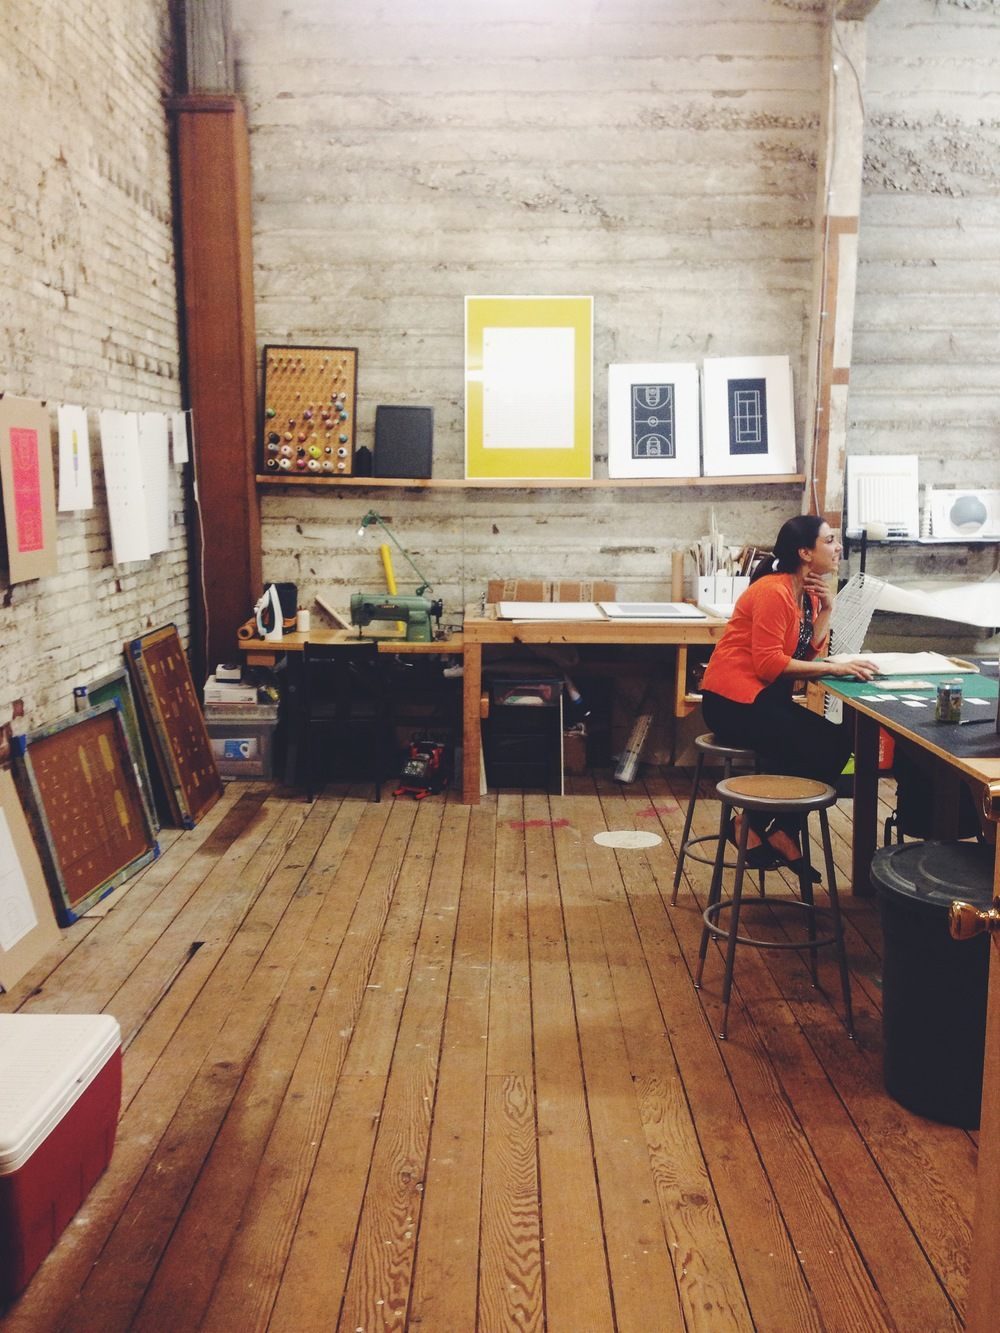 Had a great time at our open studios this weekend. Thanks everyone for coming out! More items to come to the shop soon. Stay tuned!